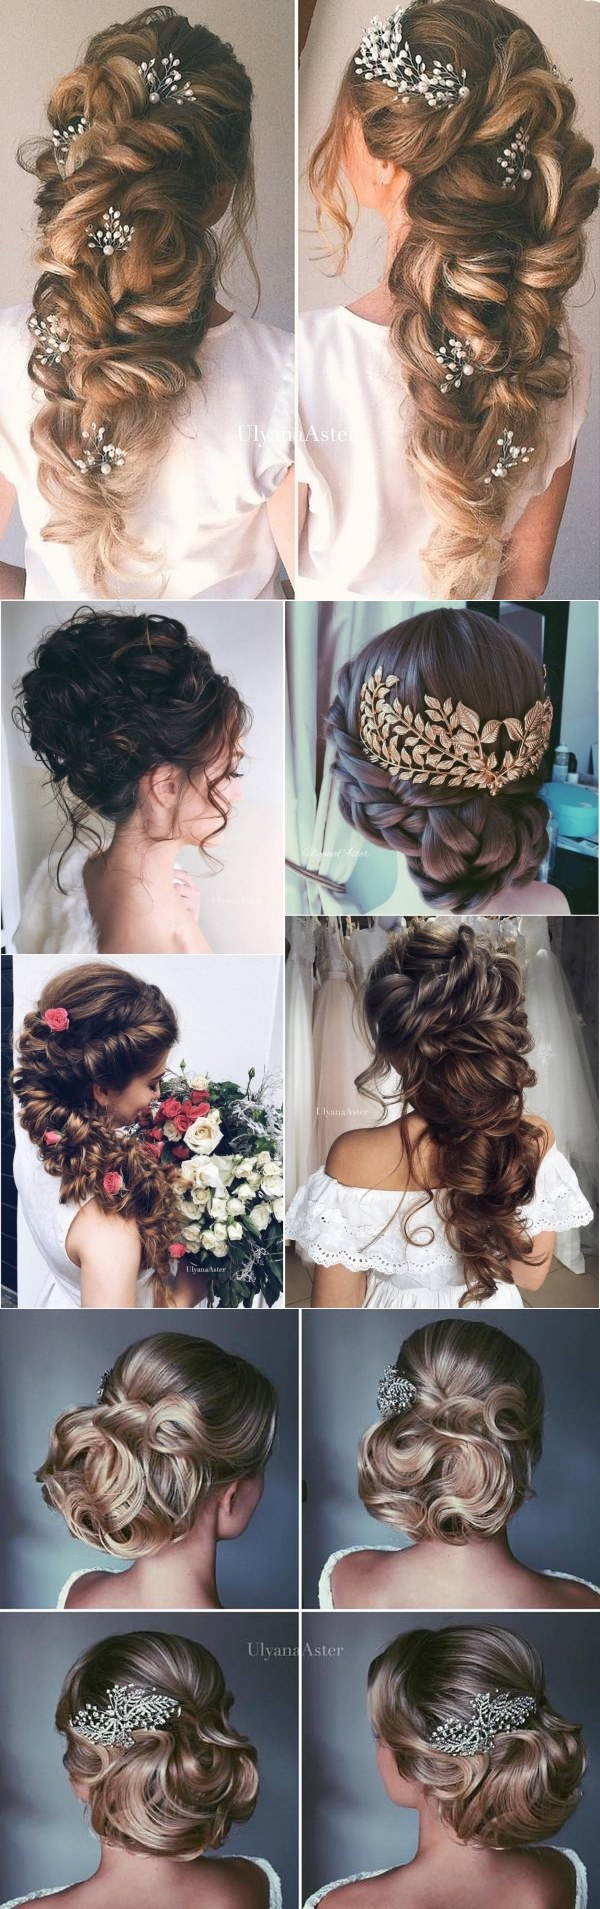 Wedding Updo Hairstyles For Long Hair 19